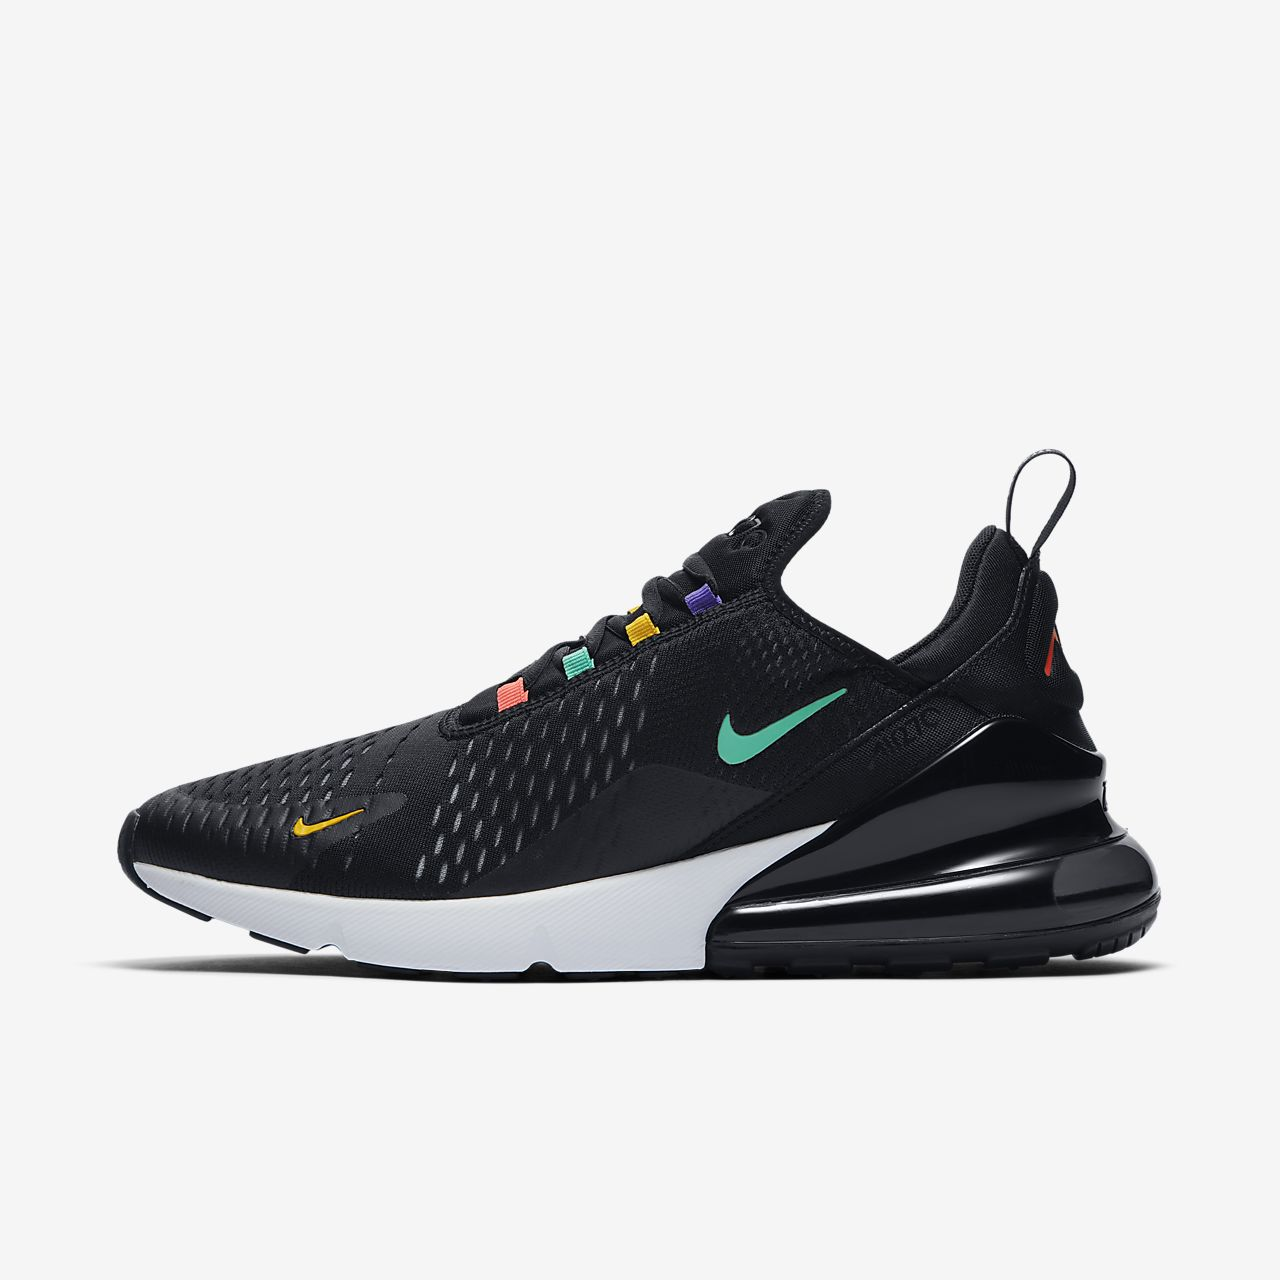 Nike Gives the Air Max 270 a